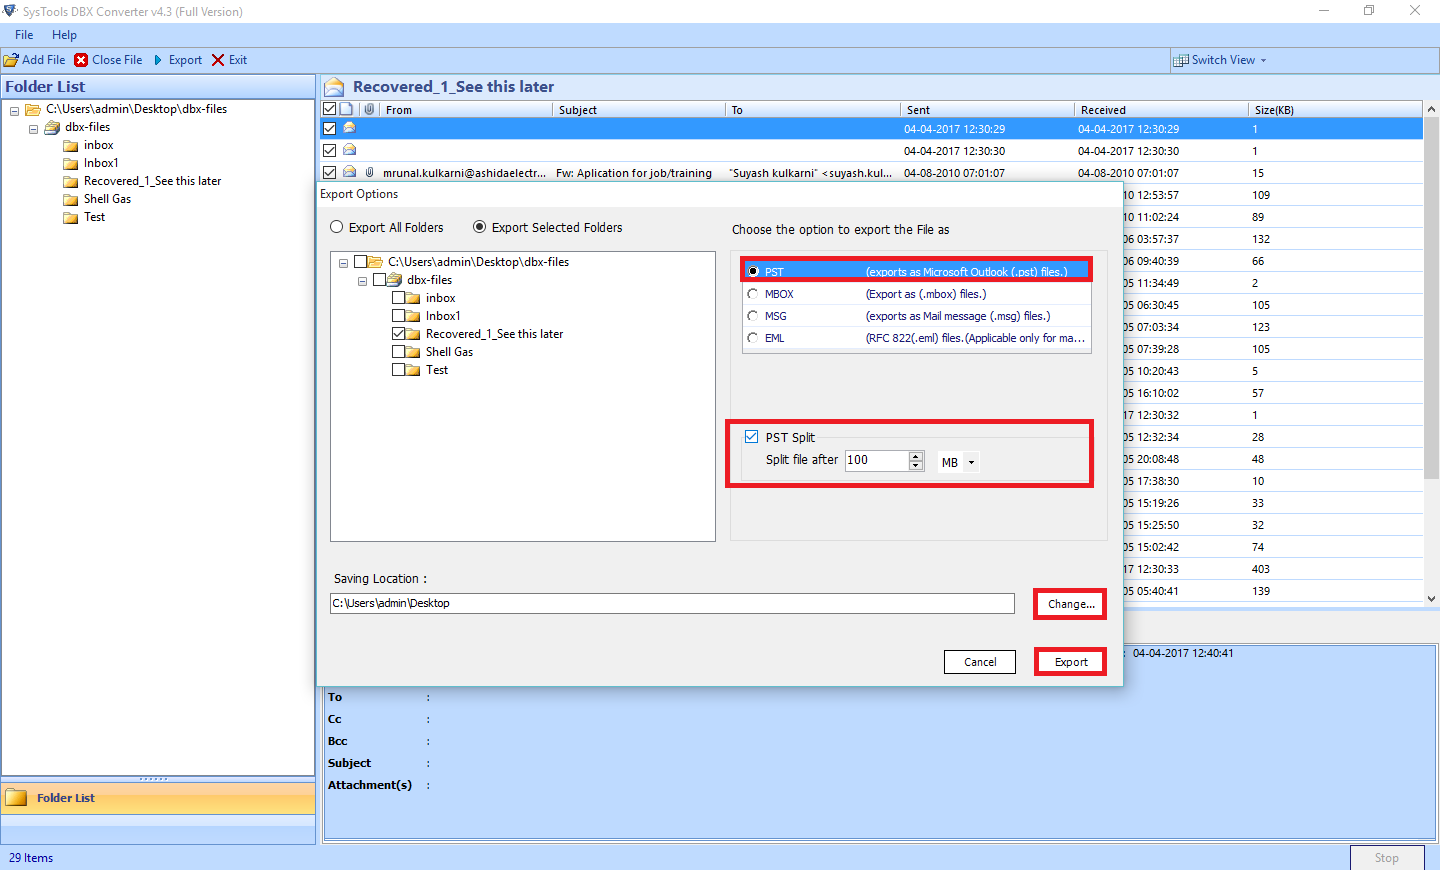 Systools dbx to pst converter torrent | innovation policy platform.